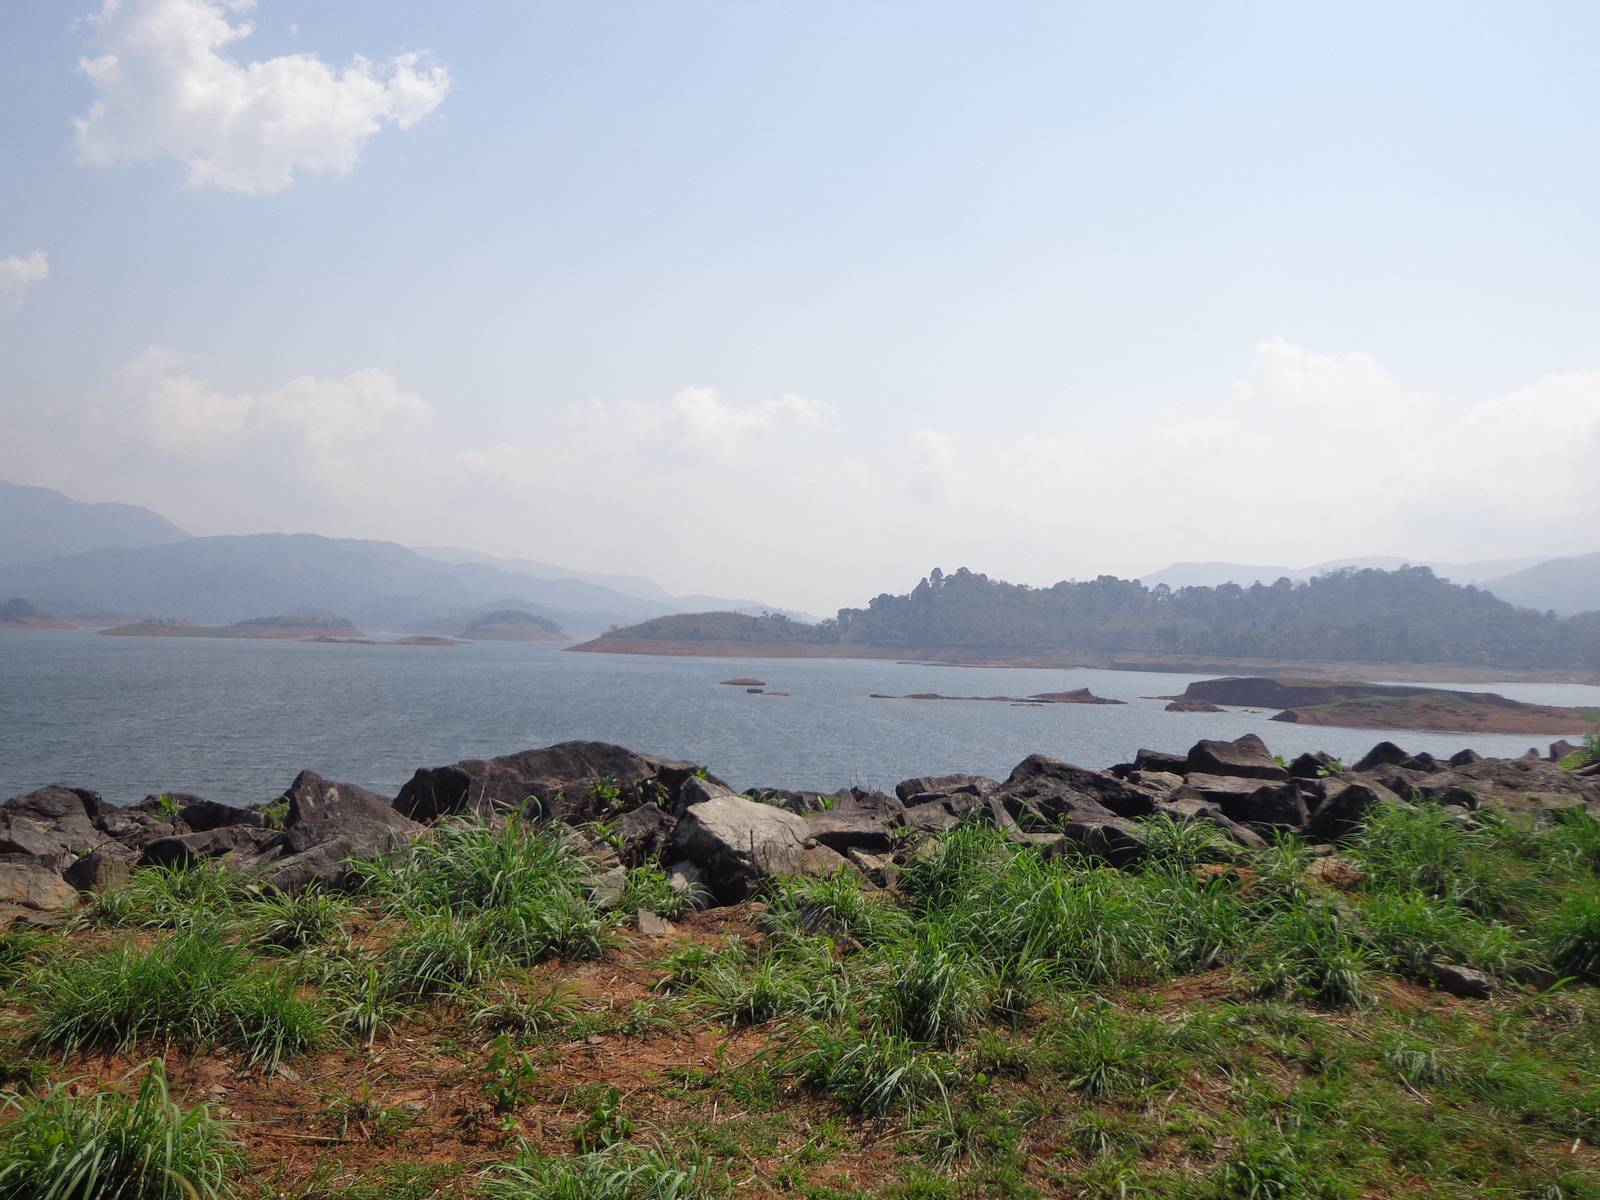 Banasurasagar Dam is the second largest earthen dam in Asia.